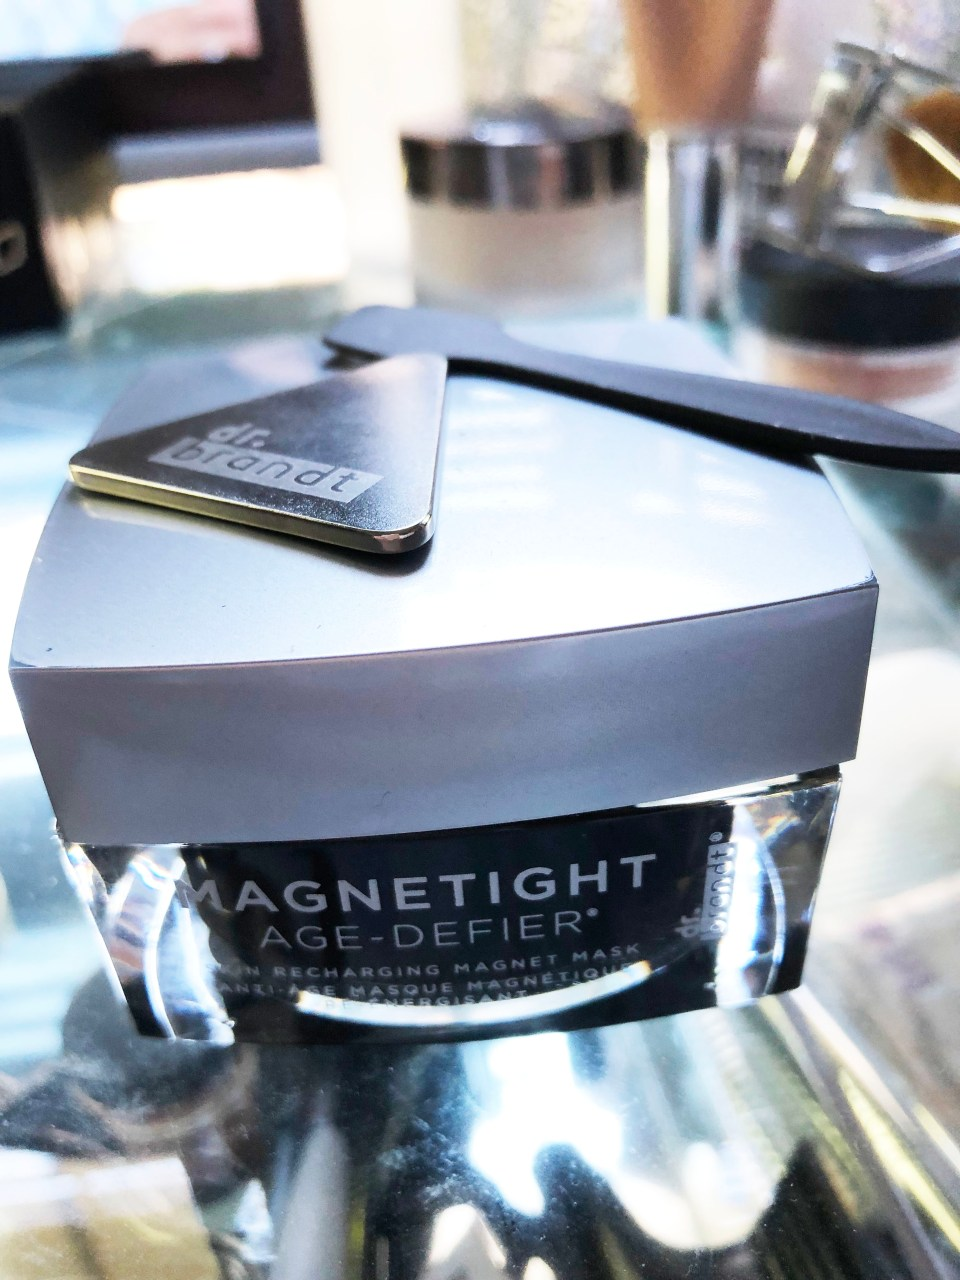 Magnetight Age-Defier Mask 2